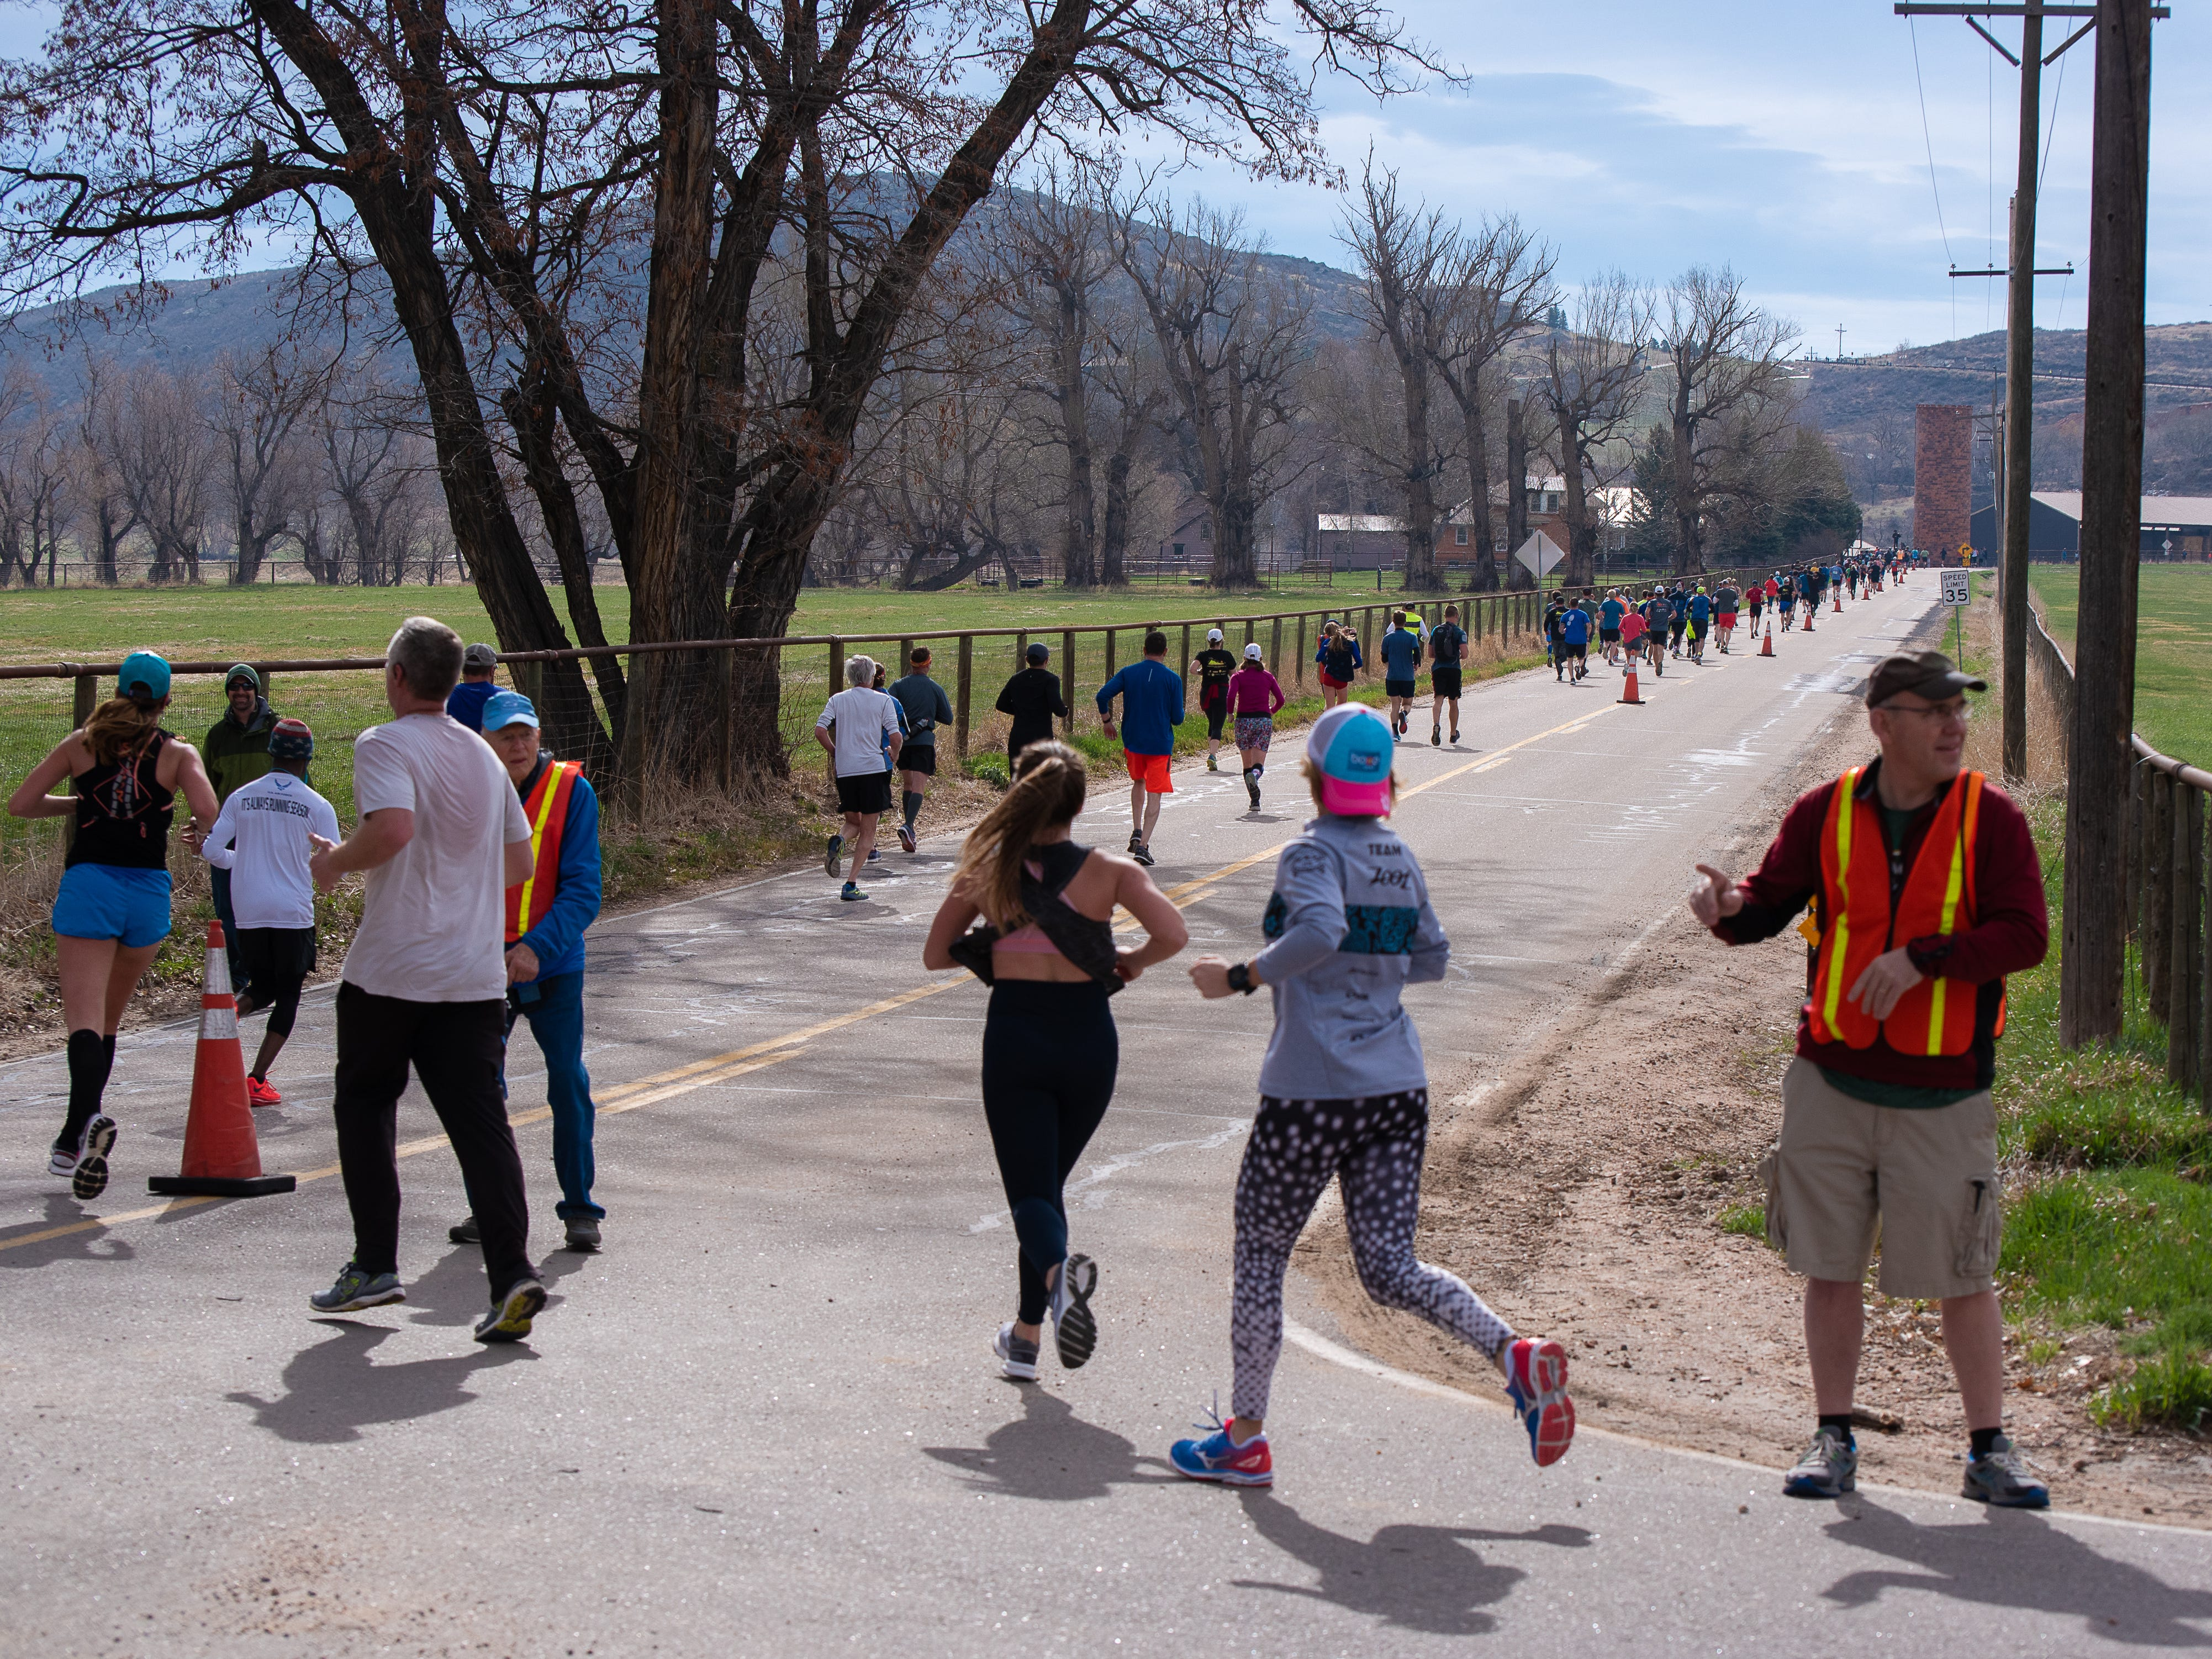 Participants round a turn and head east on Bingham Hill Road during the Horsetooth Half Marathon on Sunday, April 14, 2019, in Fort Collins, Colo.